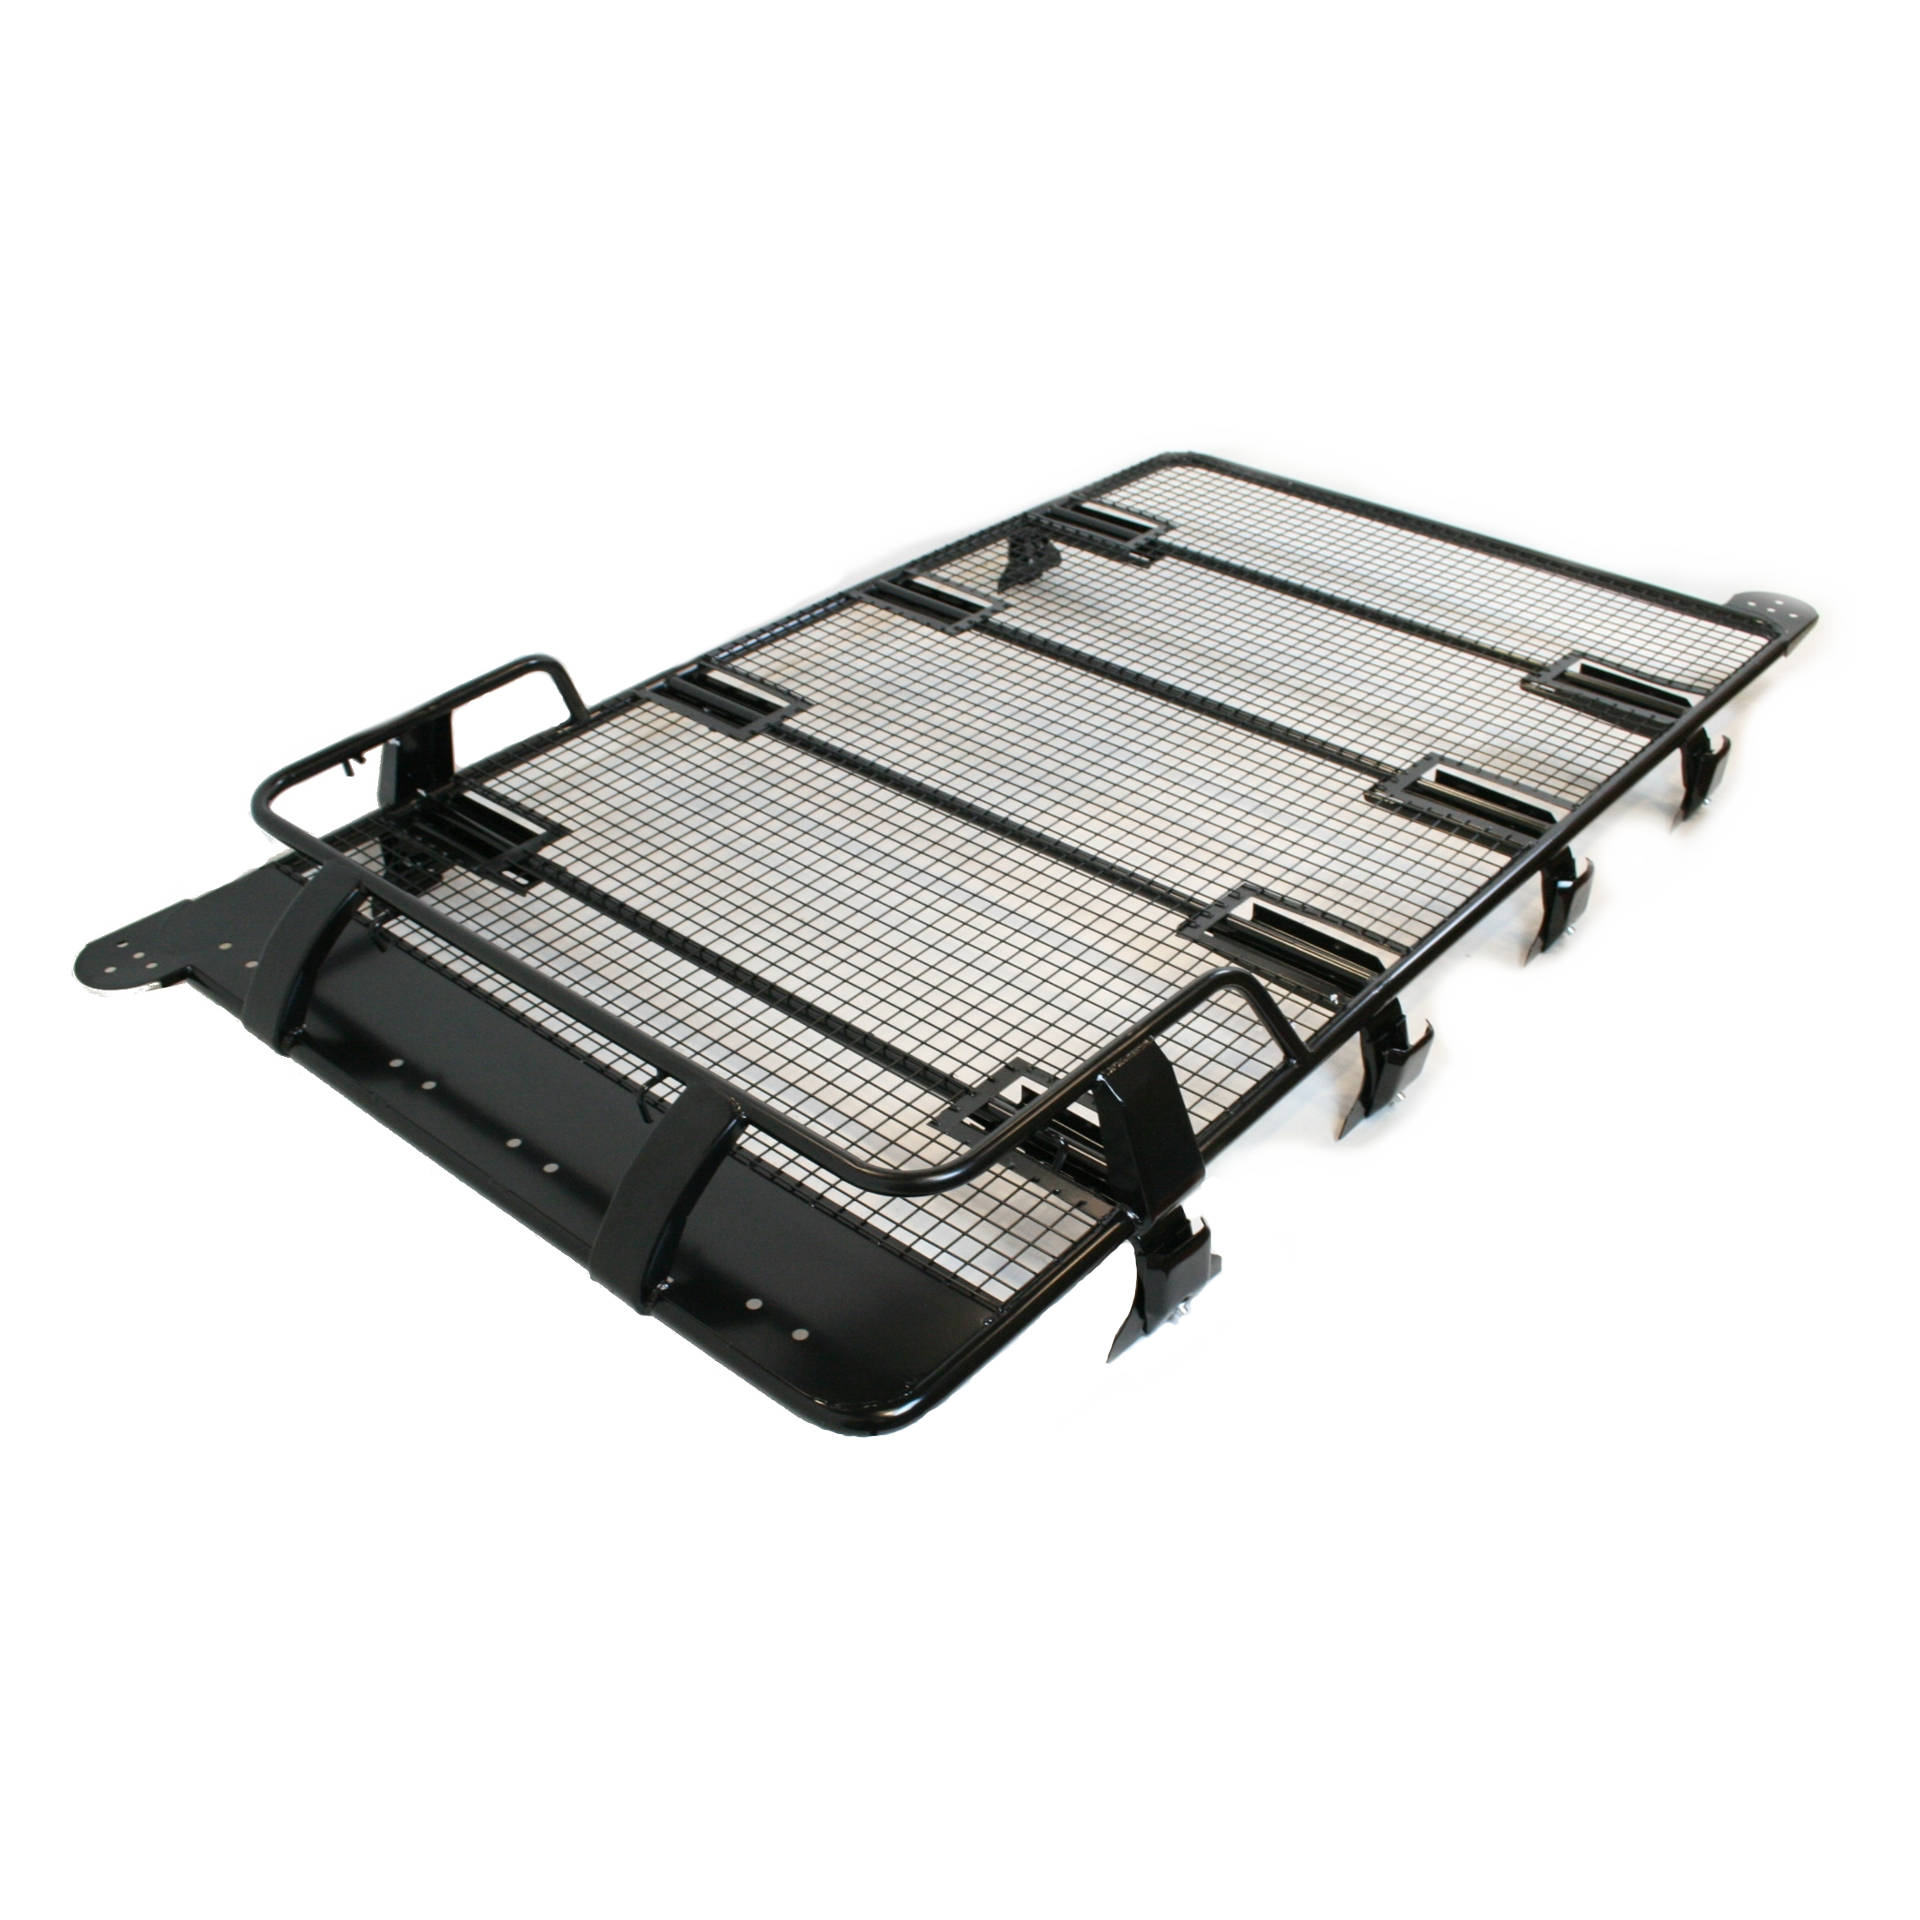 Direct4x4 Accessories UK | Expedition Front Basket Roof Rack